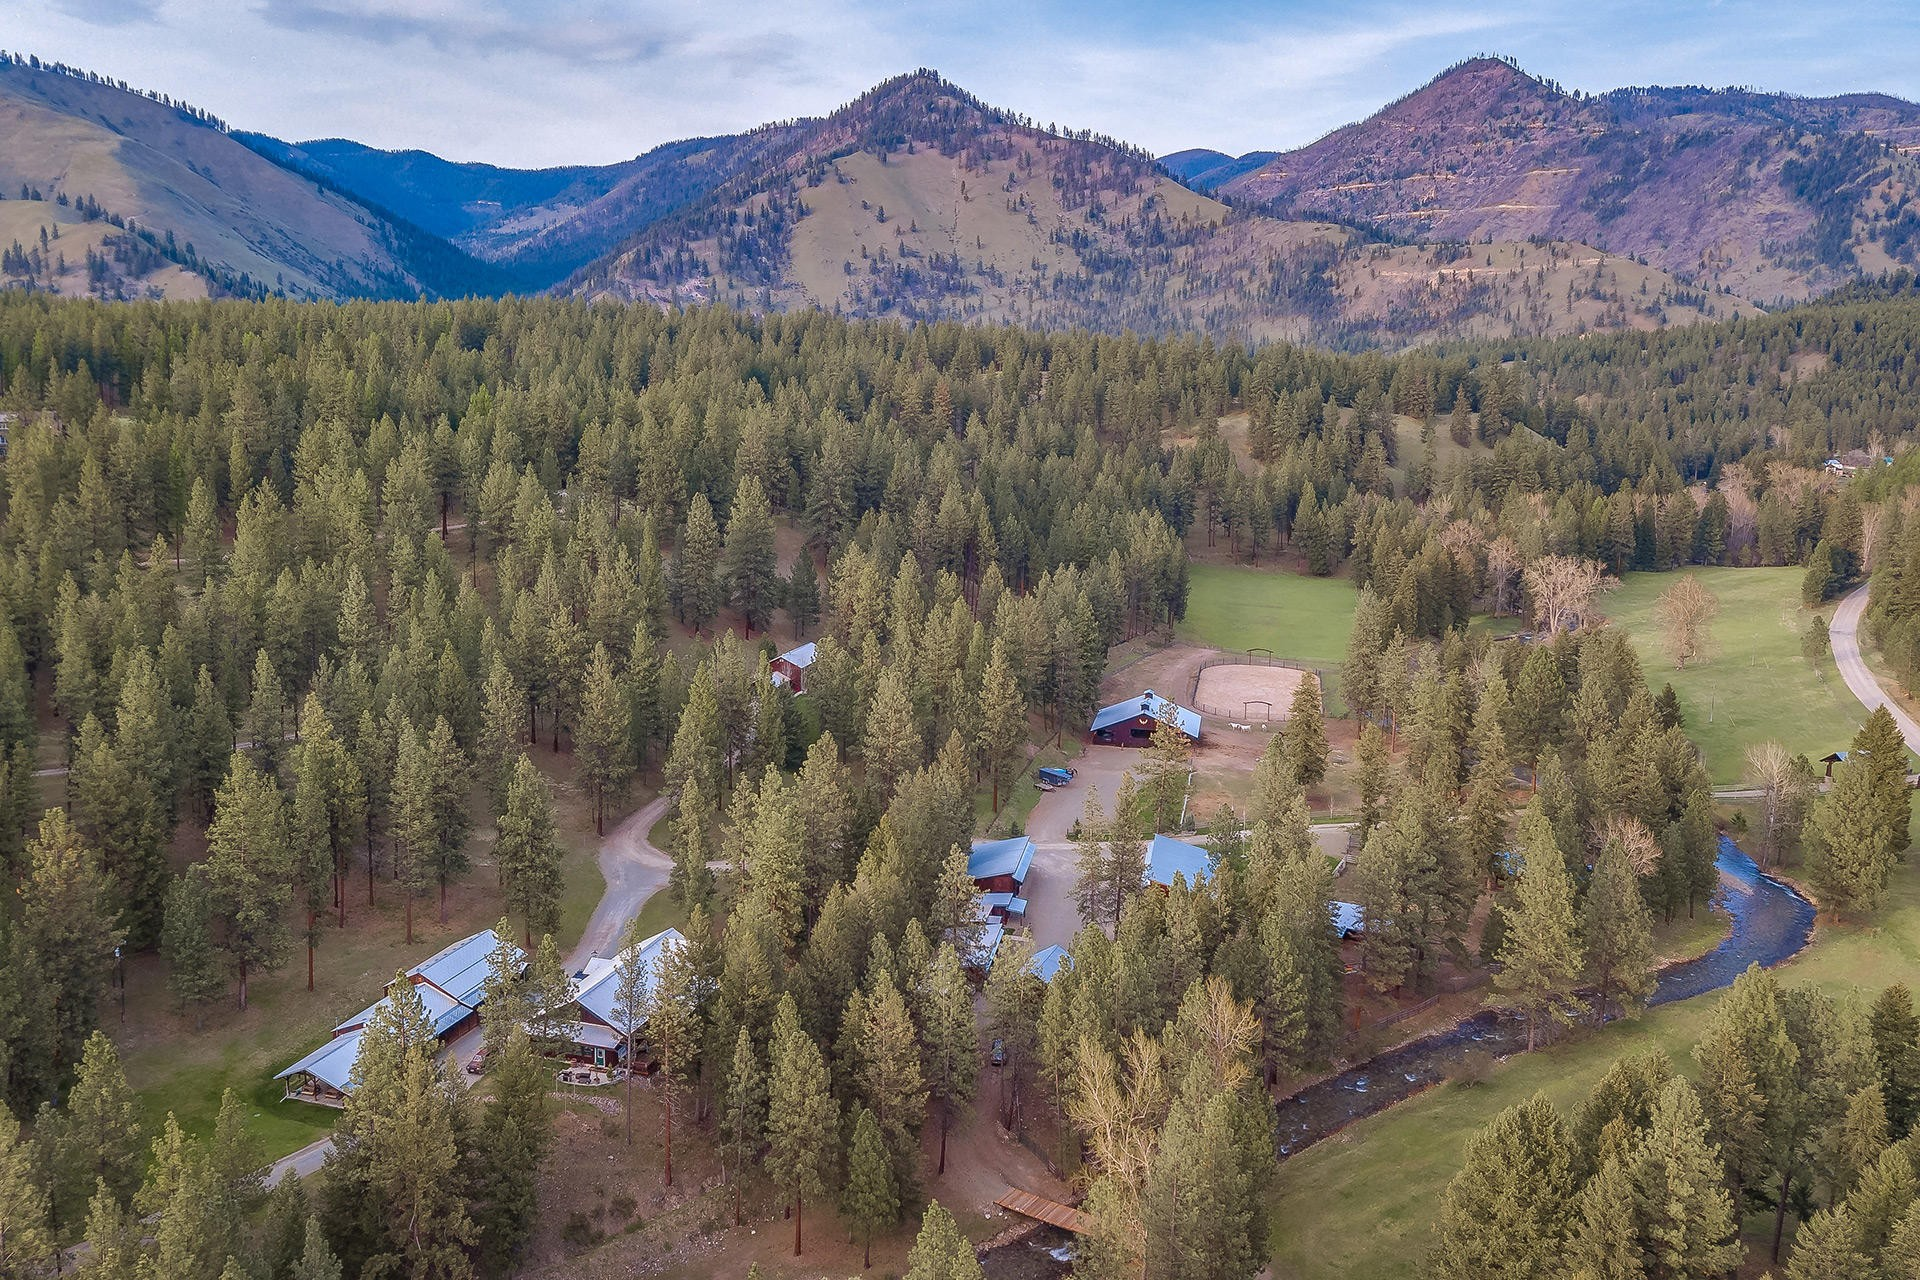 625 longhorn lane a luxury single family home for sale in superior, montana property id 21902909 christie s international real estate